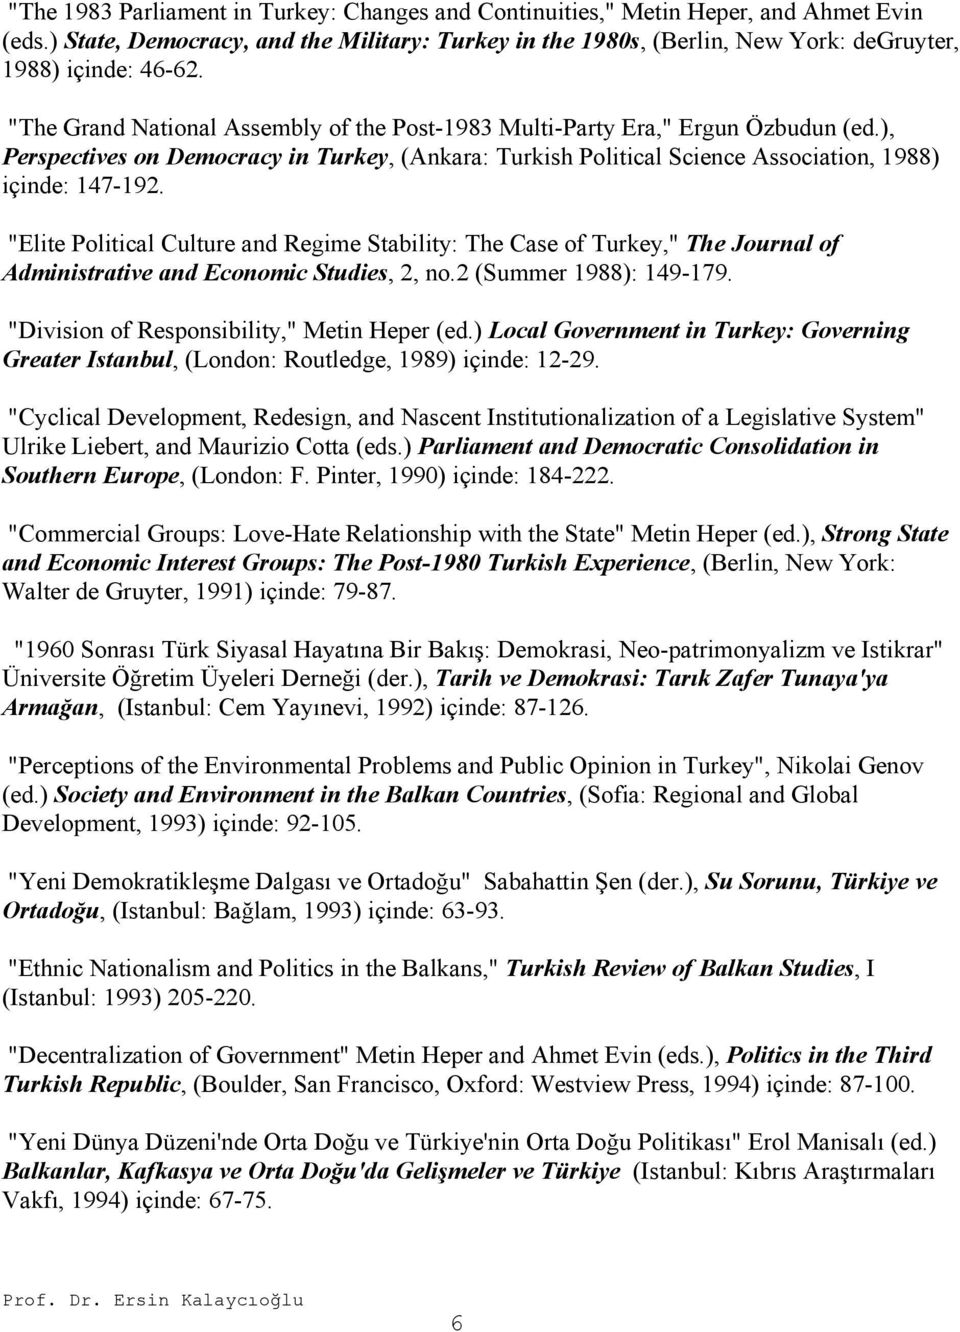 ), Perspectives on Democracy in Turkey, (Ankara: Turkish Political Science Association, 1988) içinde: 147-192.